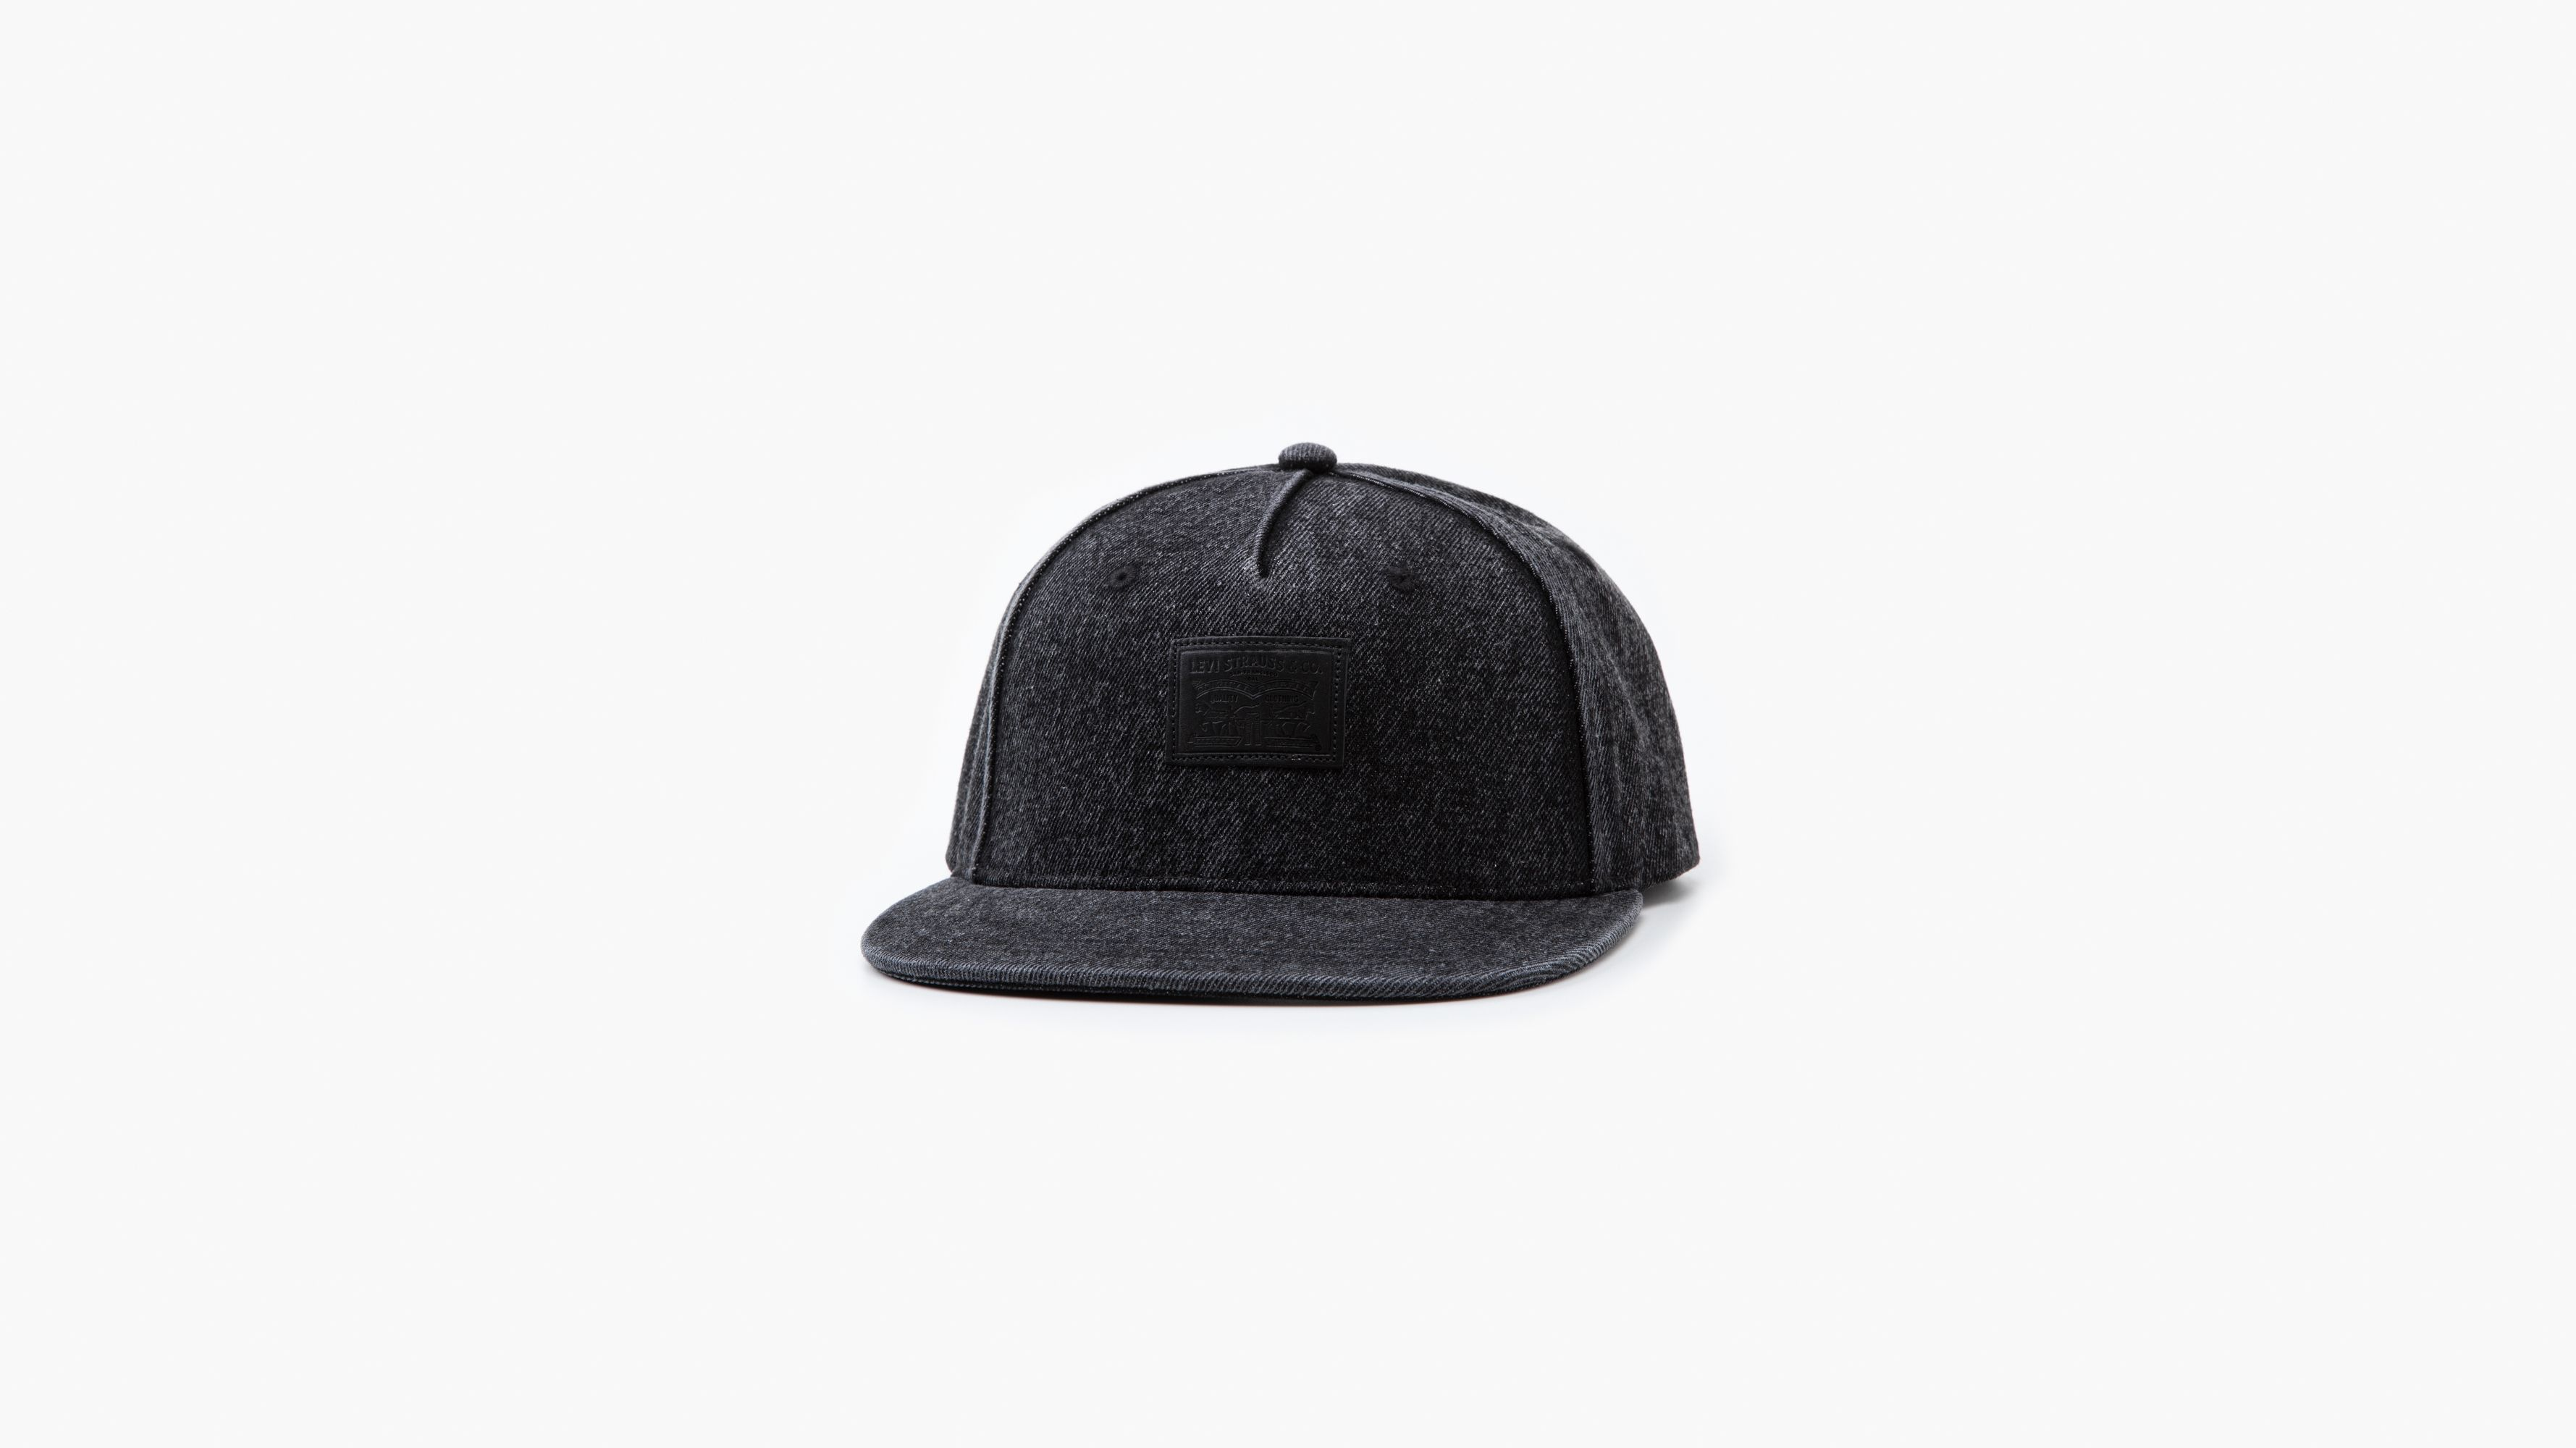 Levis Two Horse Pull Flat Brim Hat